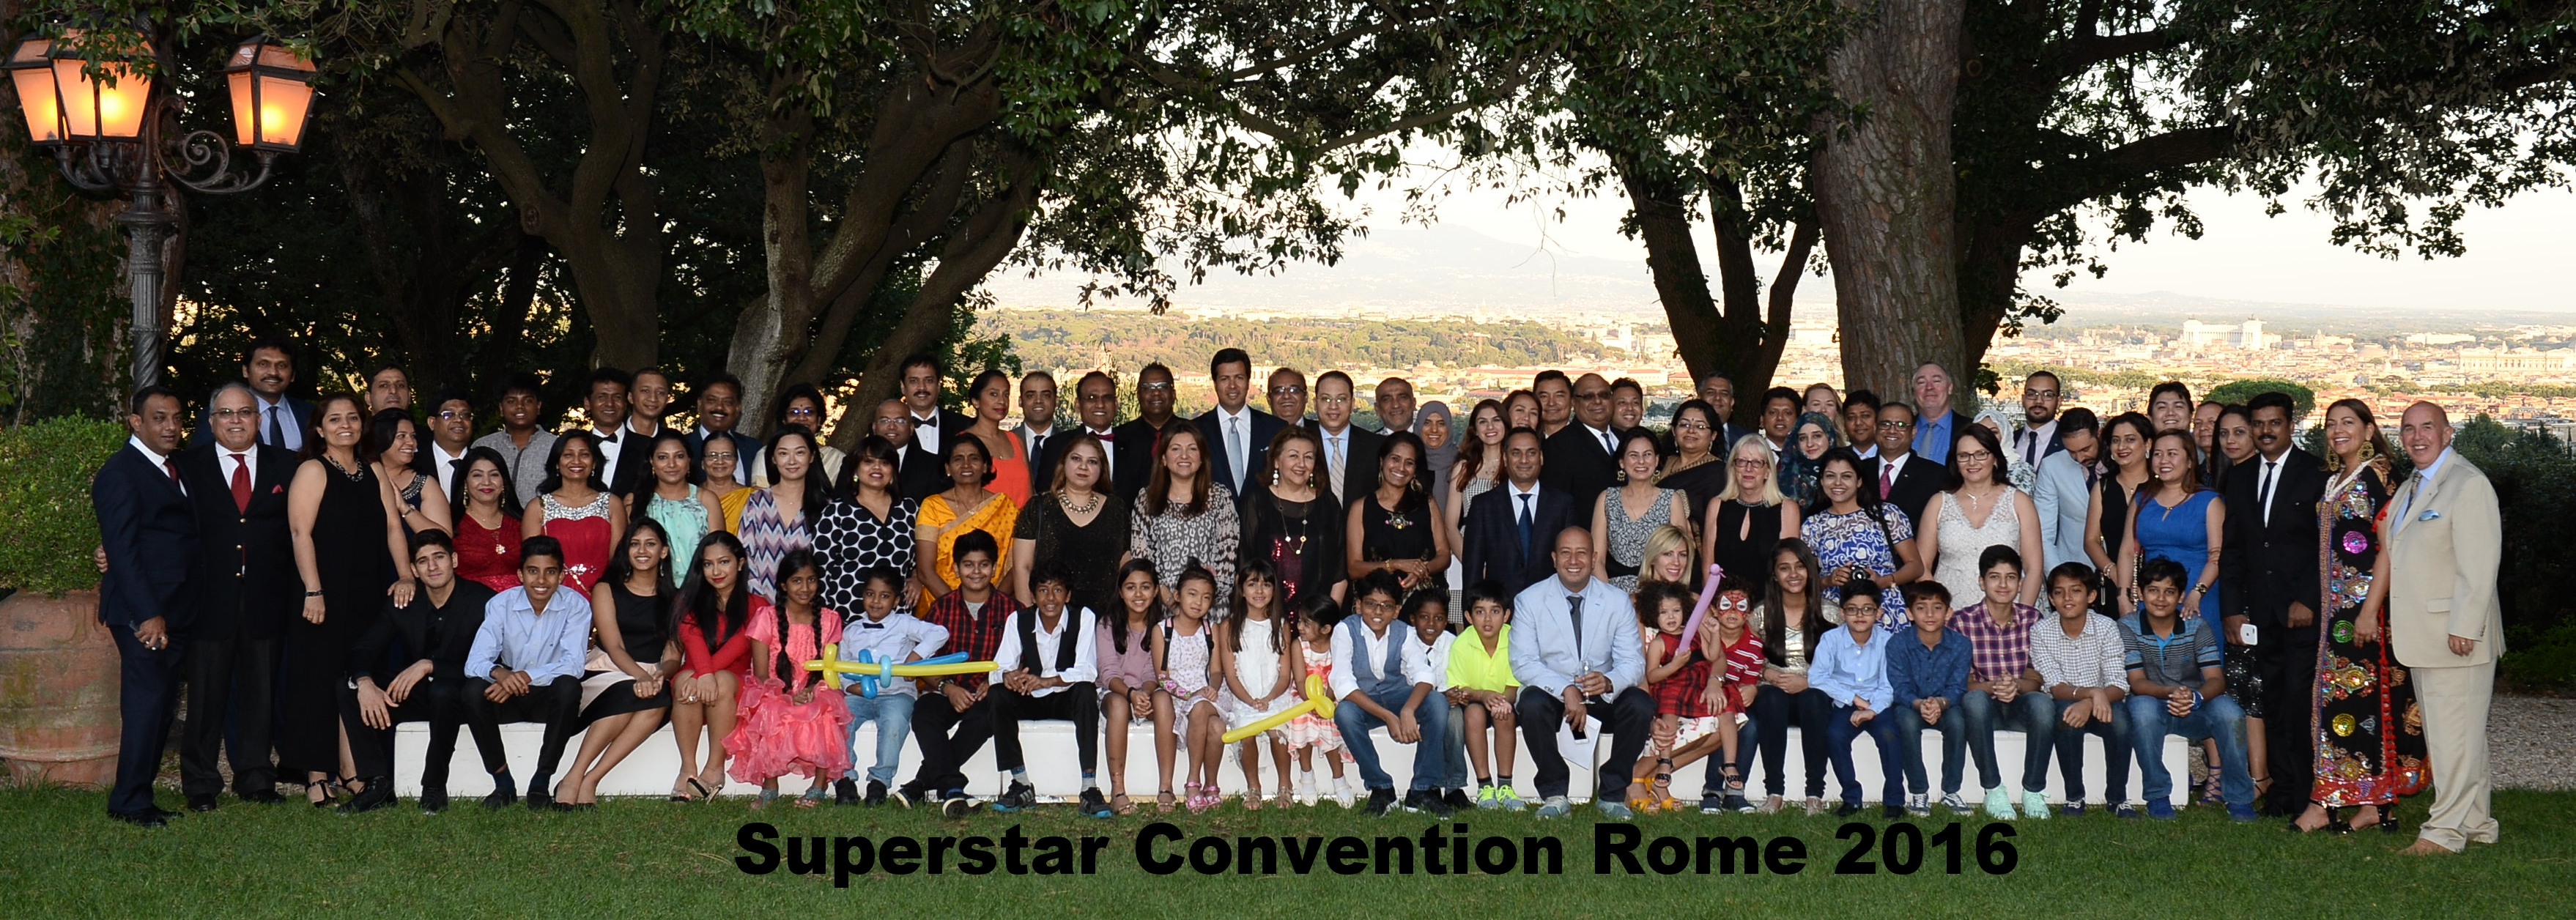 Superstar Convention Rome 2016